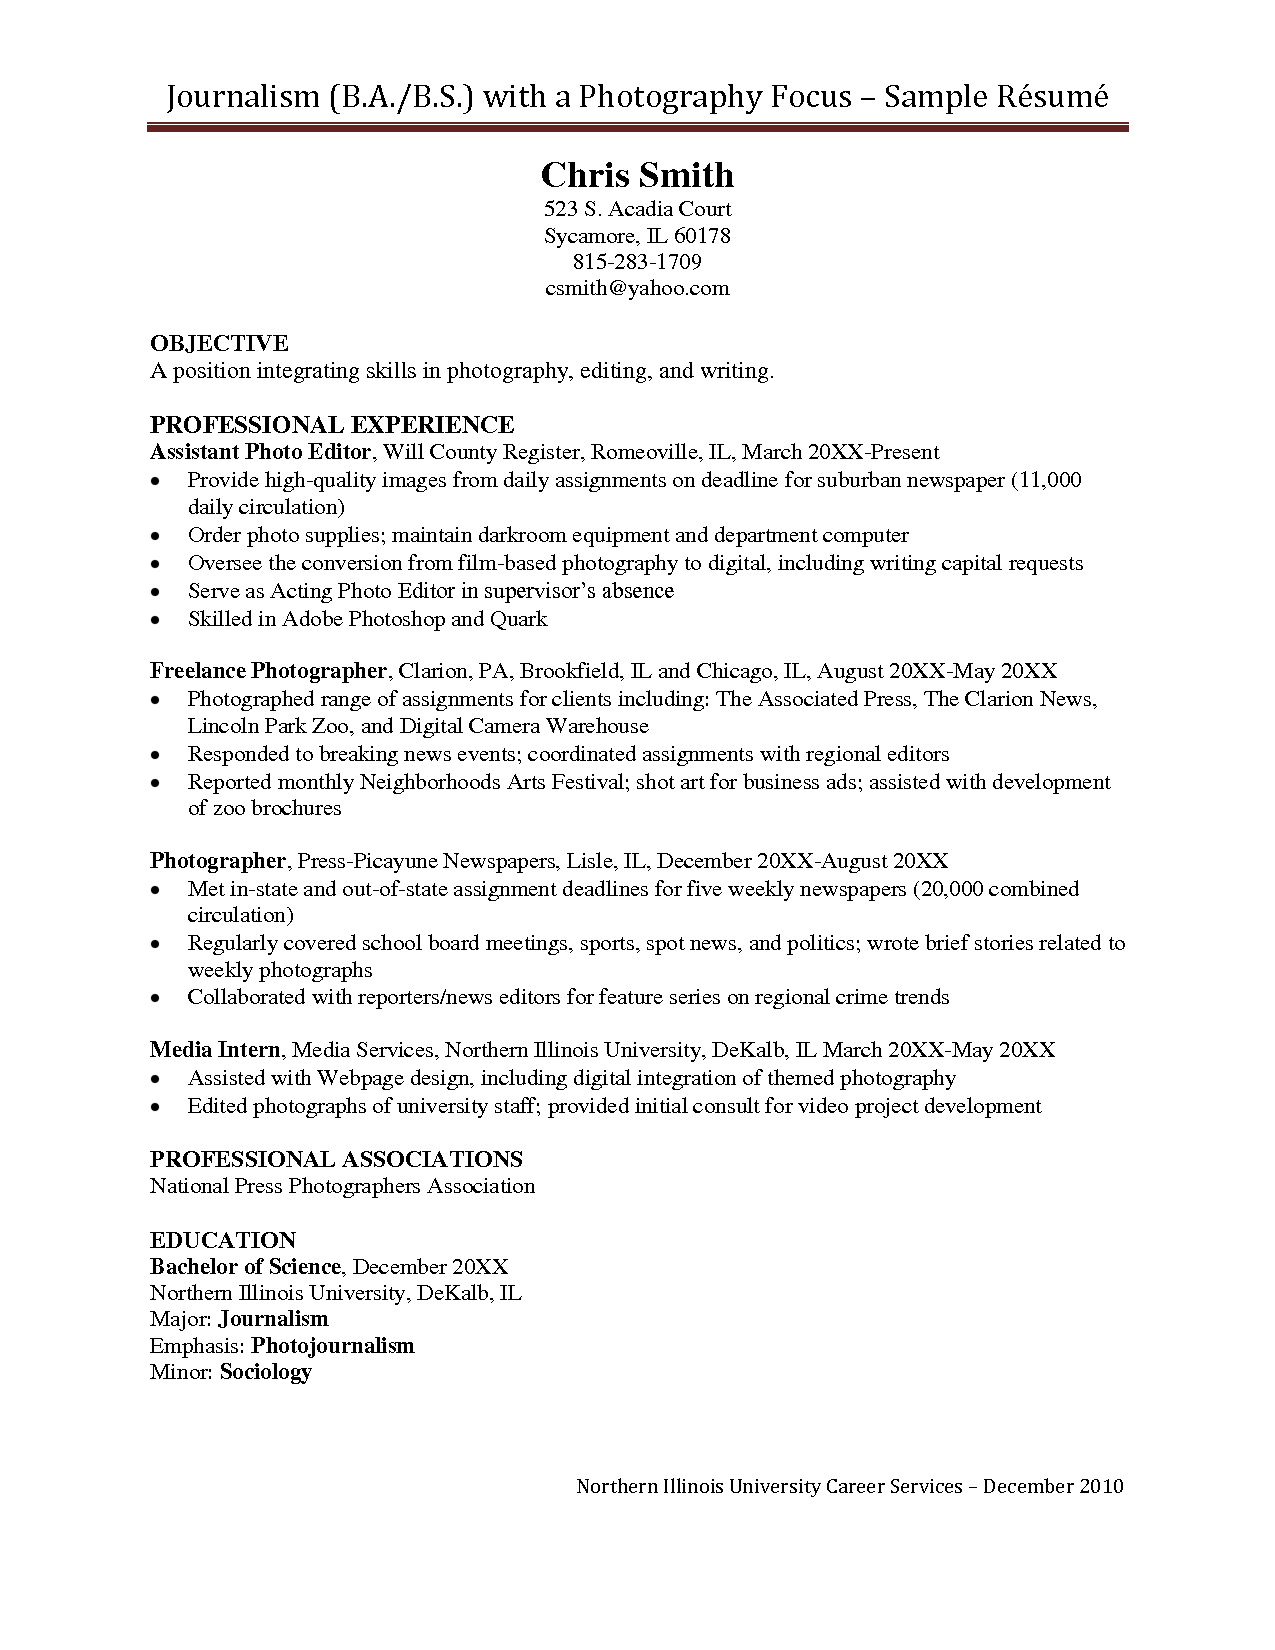 jobcentre cv sample